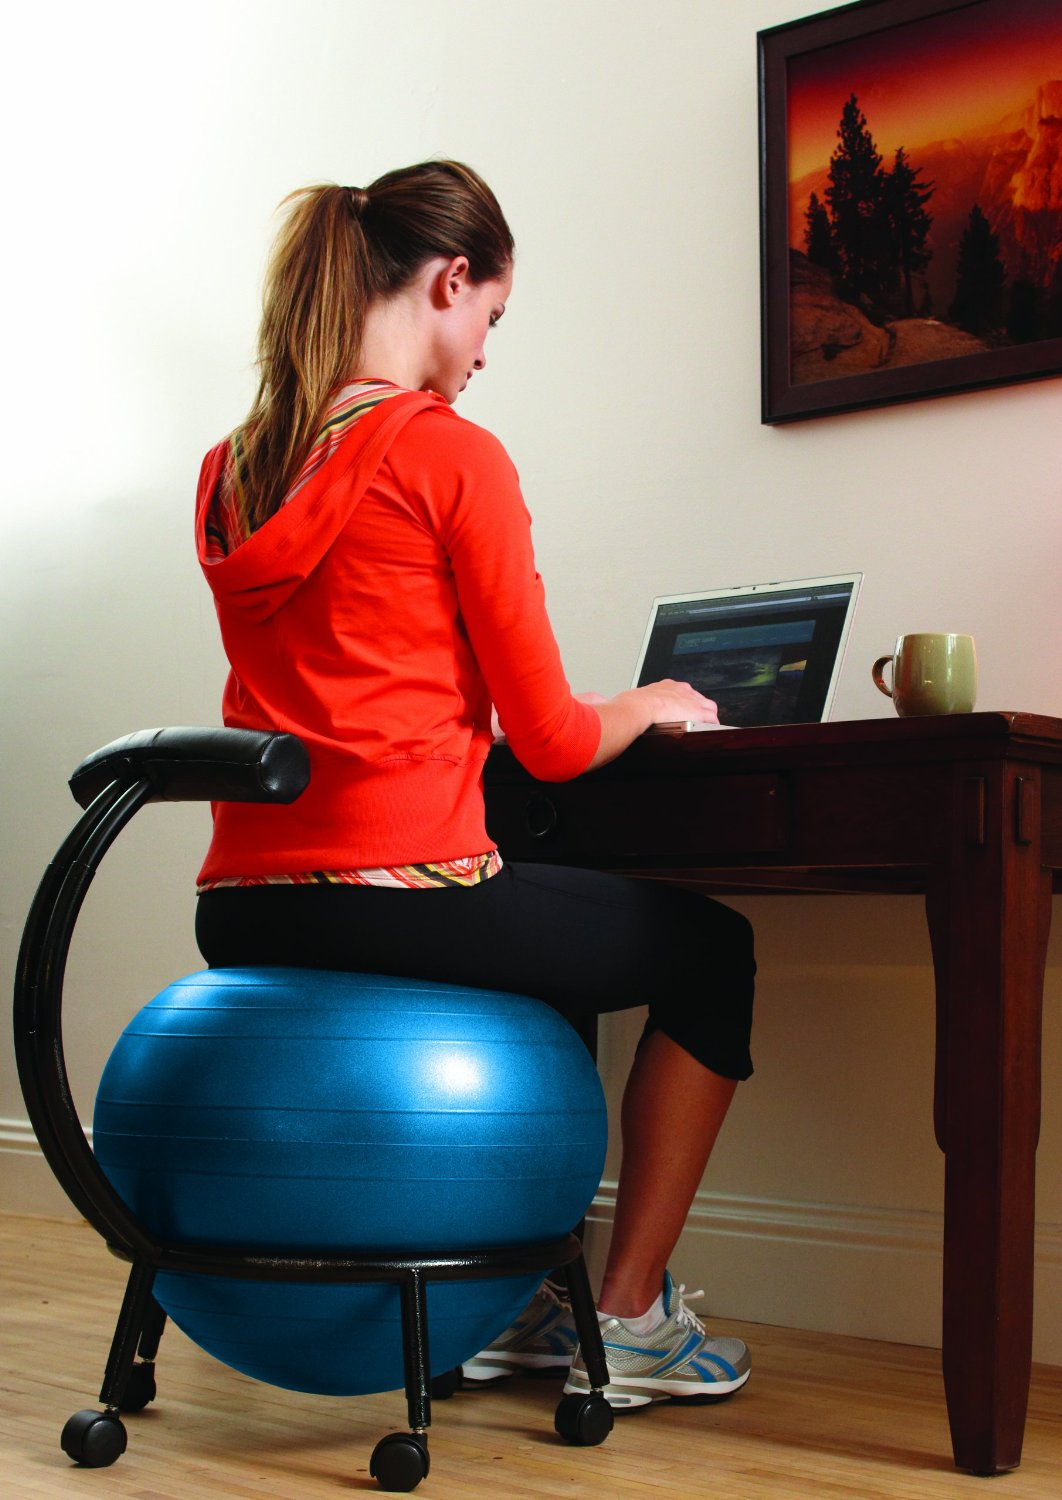 Excercise Ball Desk Chair  Oh My Thats Awesome